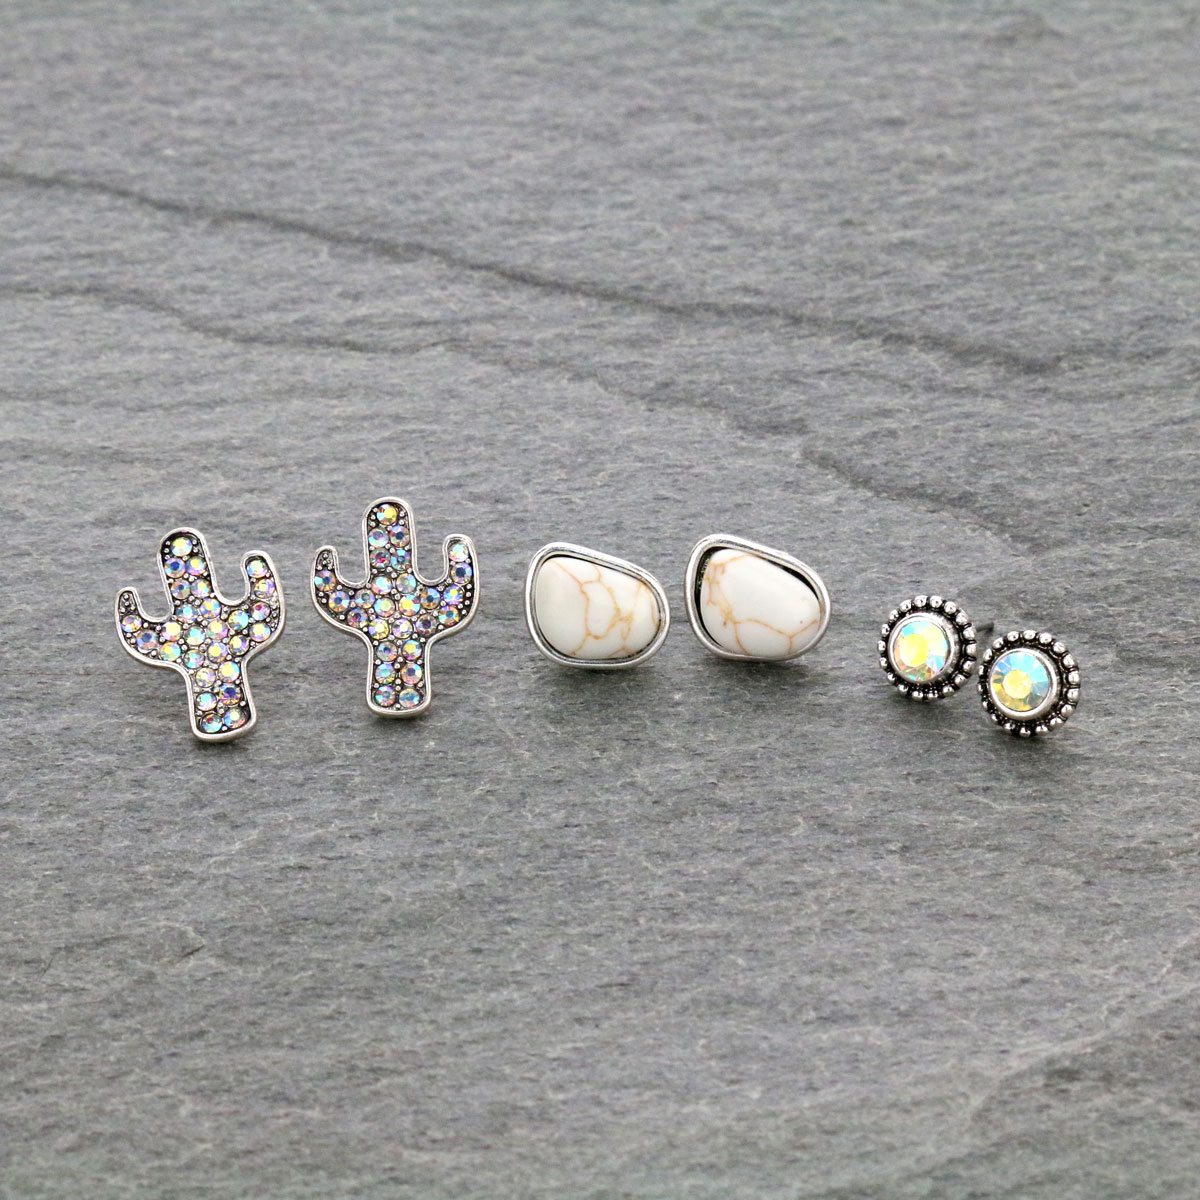 3 Pair Cactus Stone Stud Earrings Set-ER1115/NAT